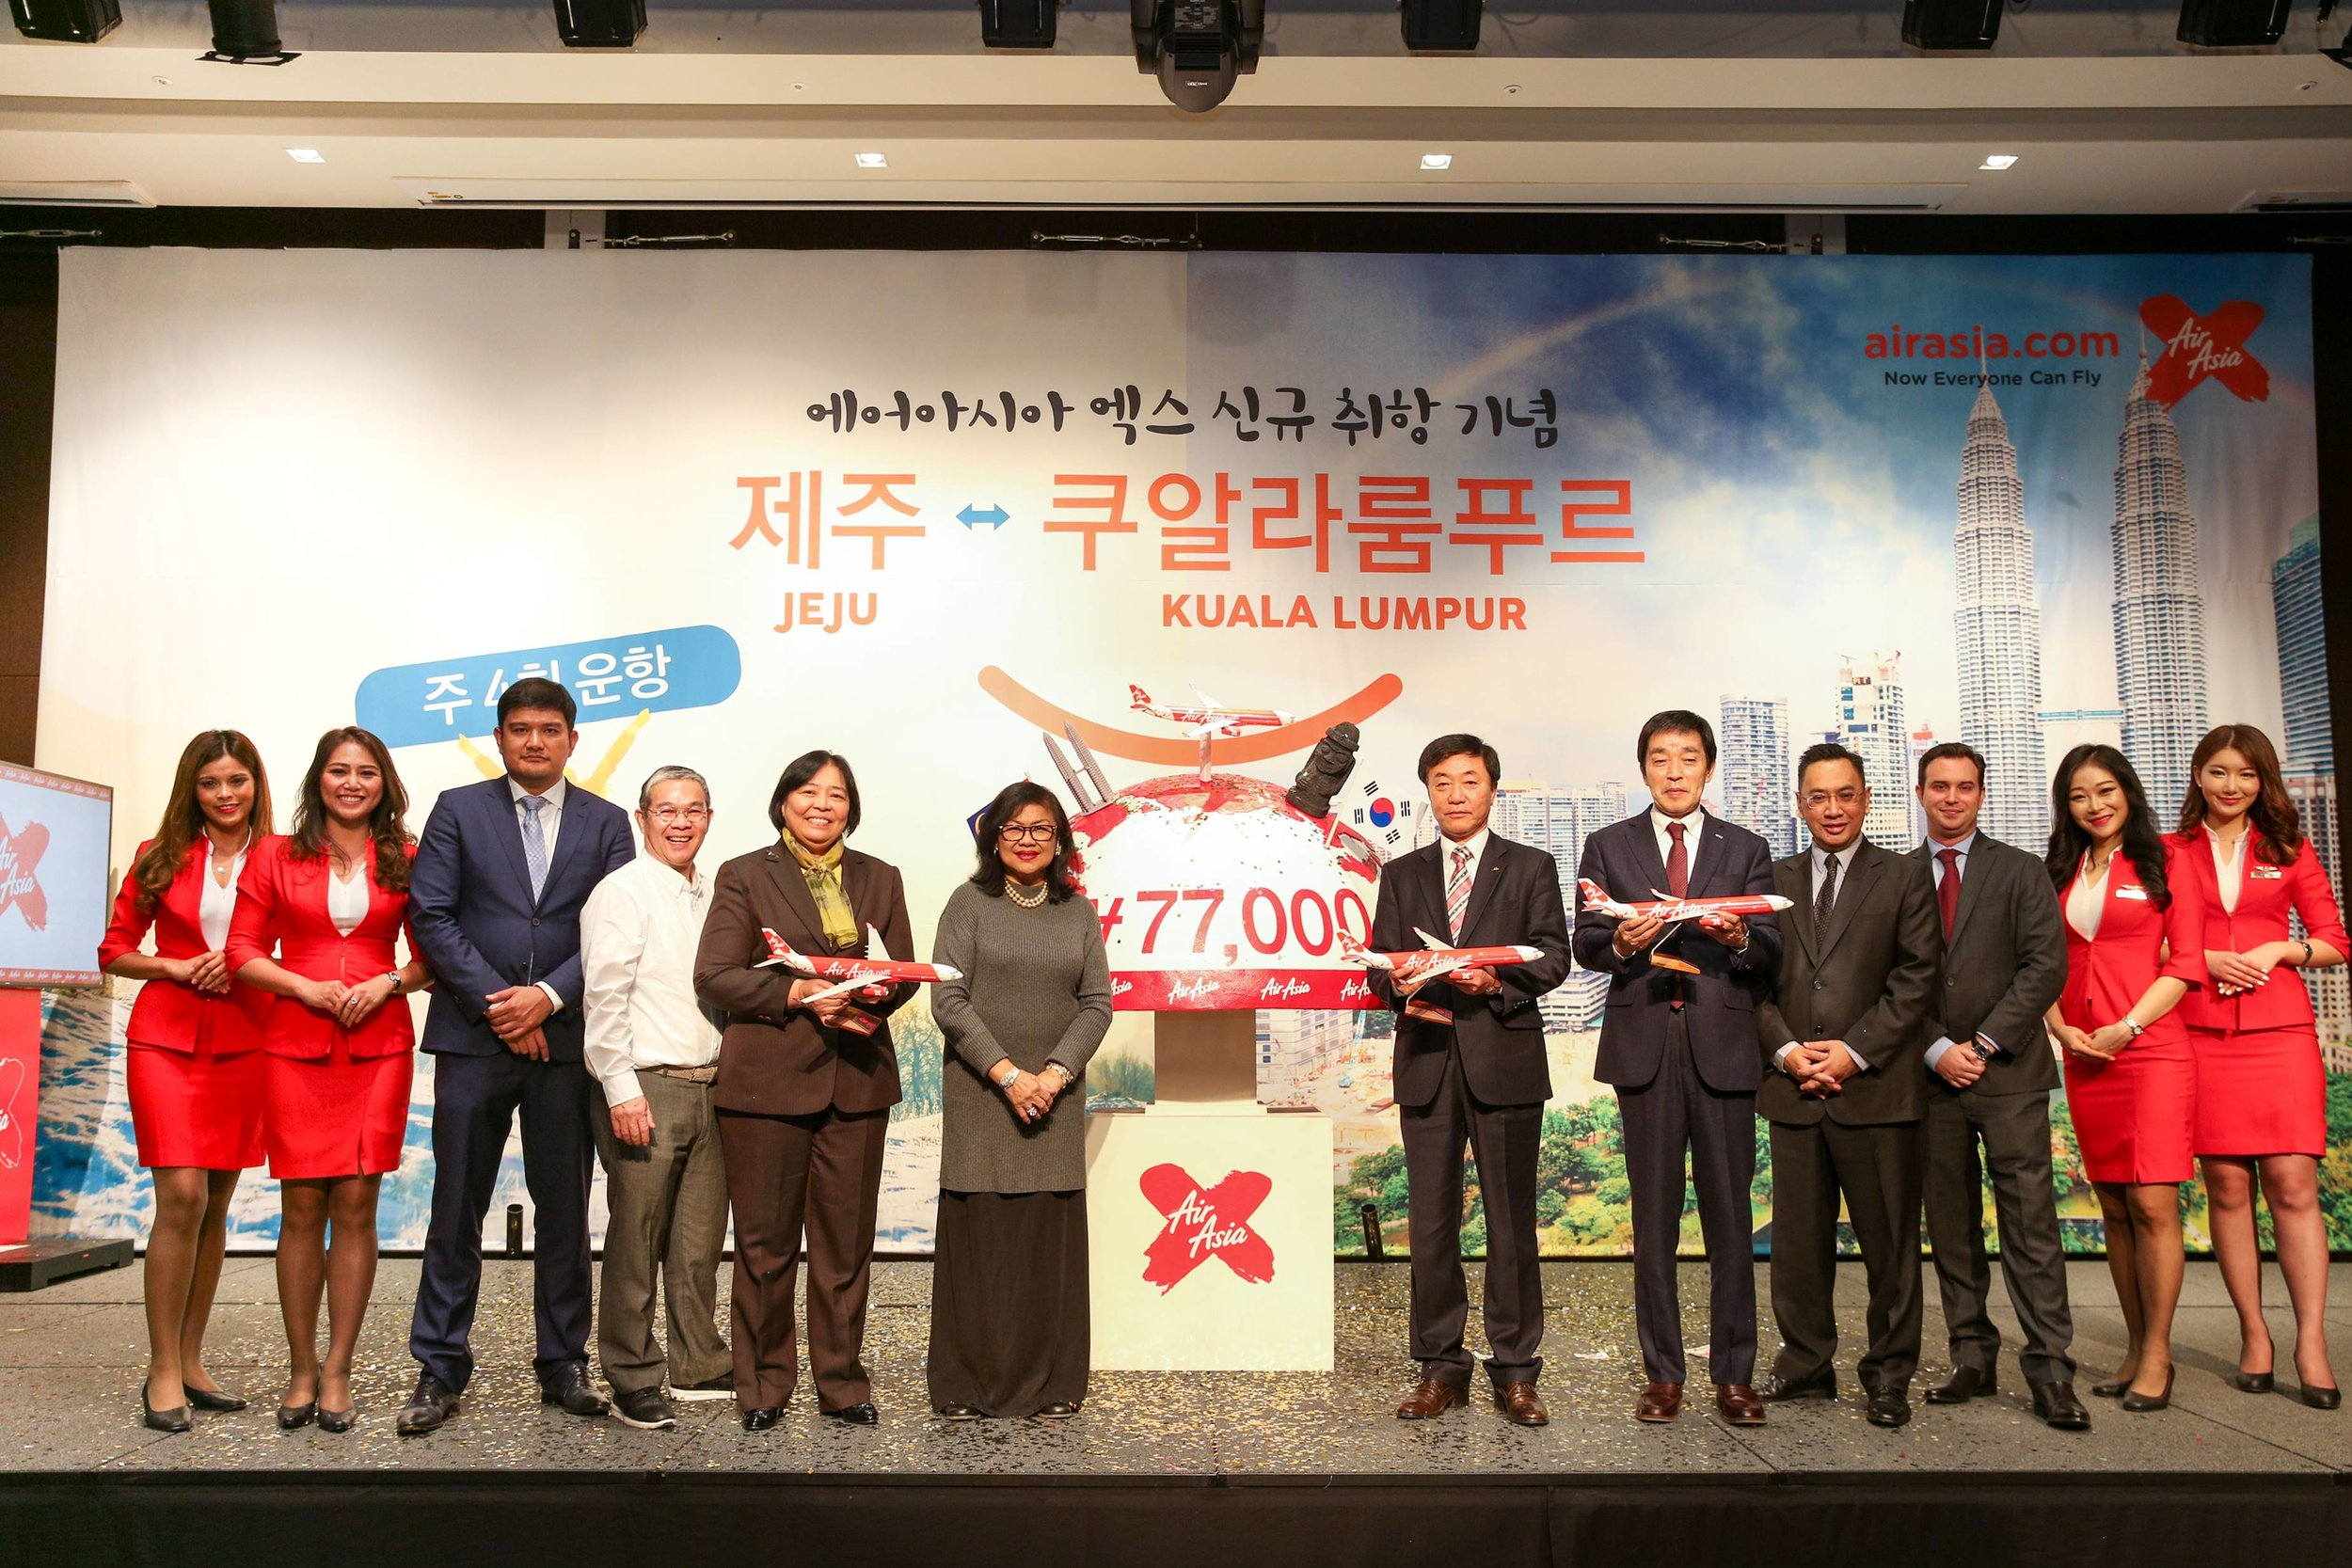 AirAsia X commences exclusive operating between Kuala Lumpur and Jeju_1.jpg